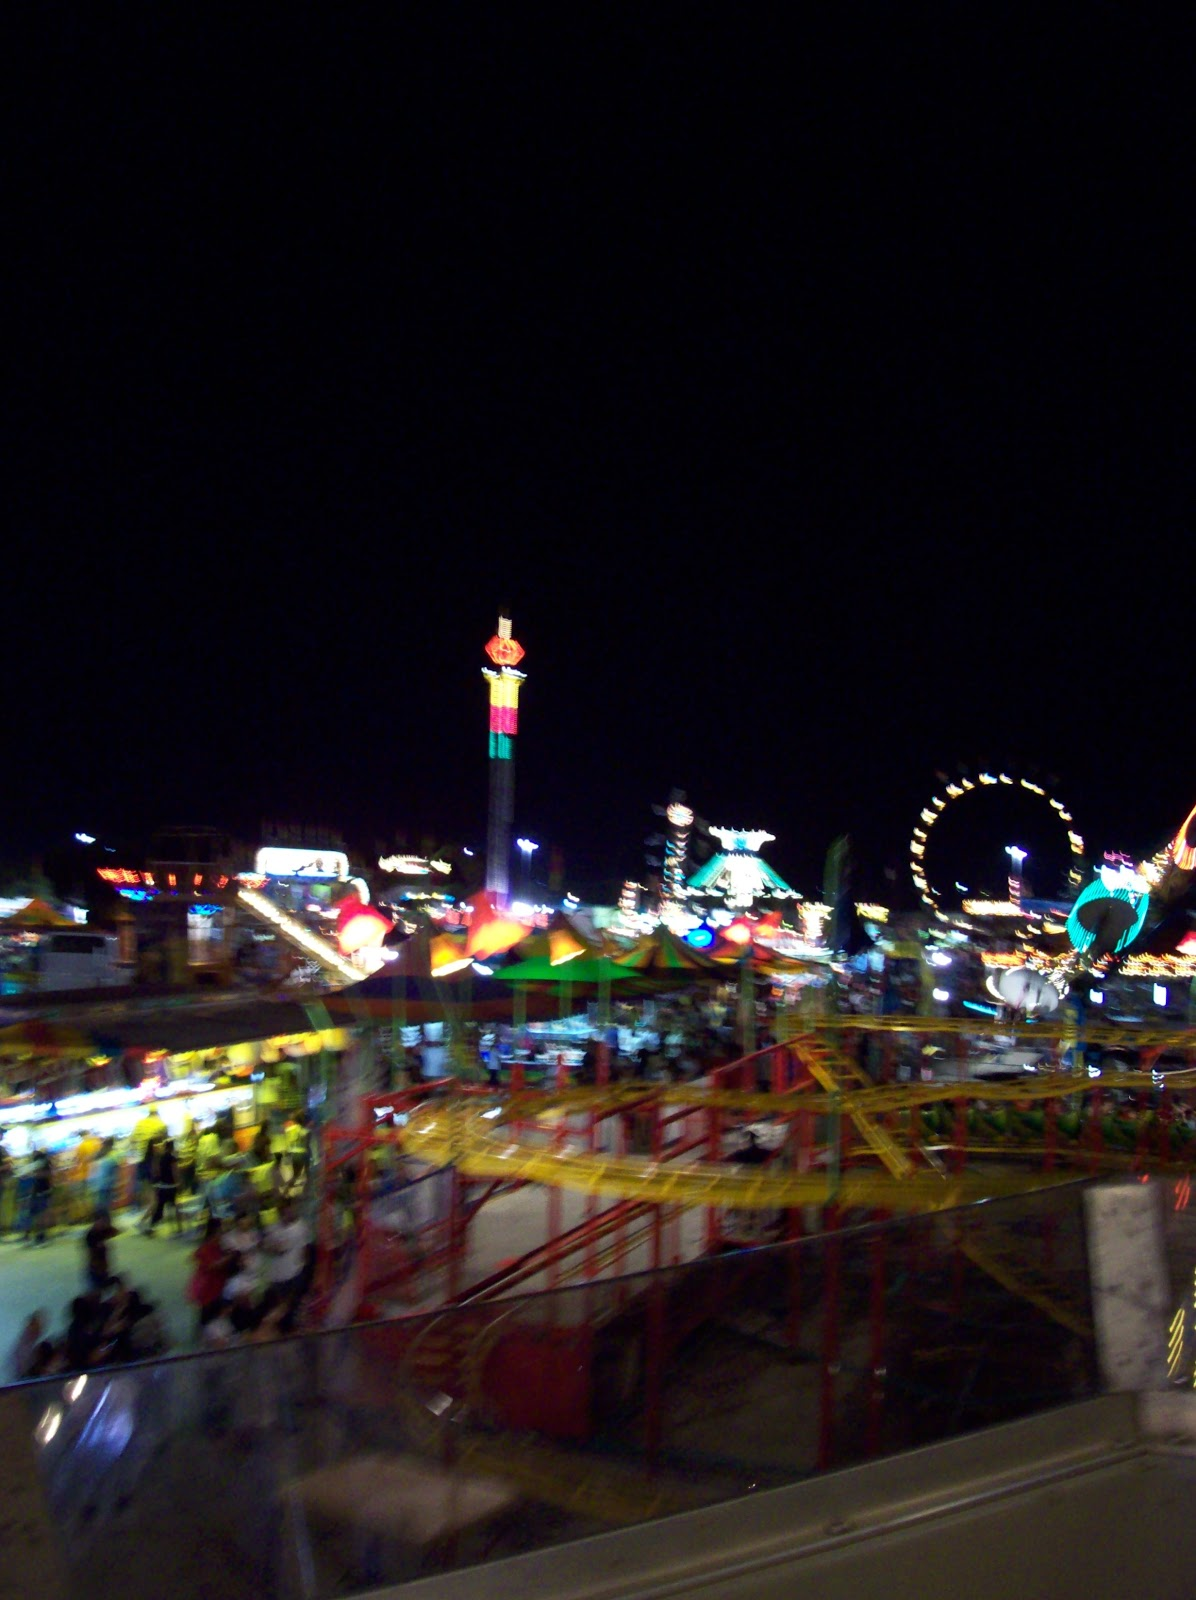 Fort Bend County Fair - 101_5451.JPG